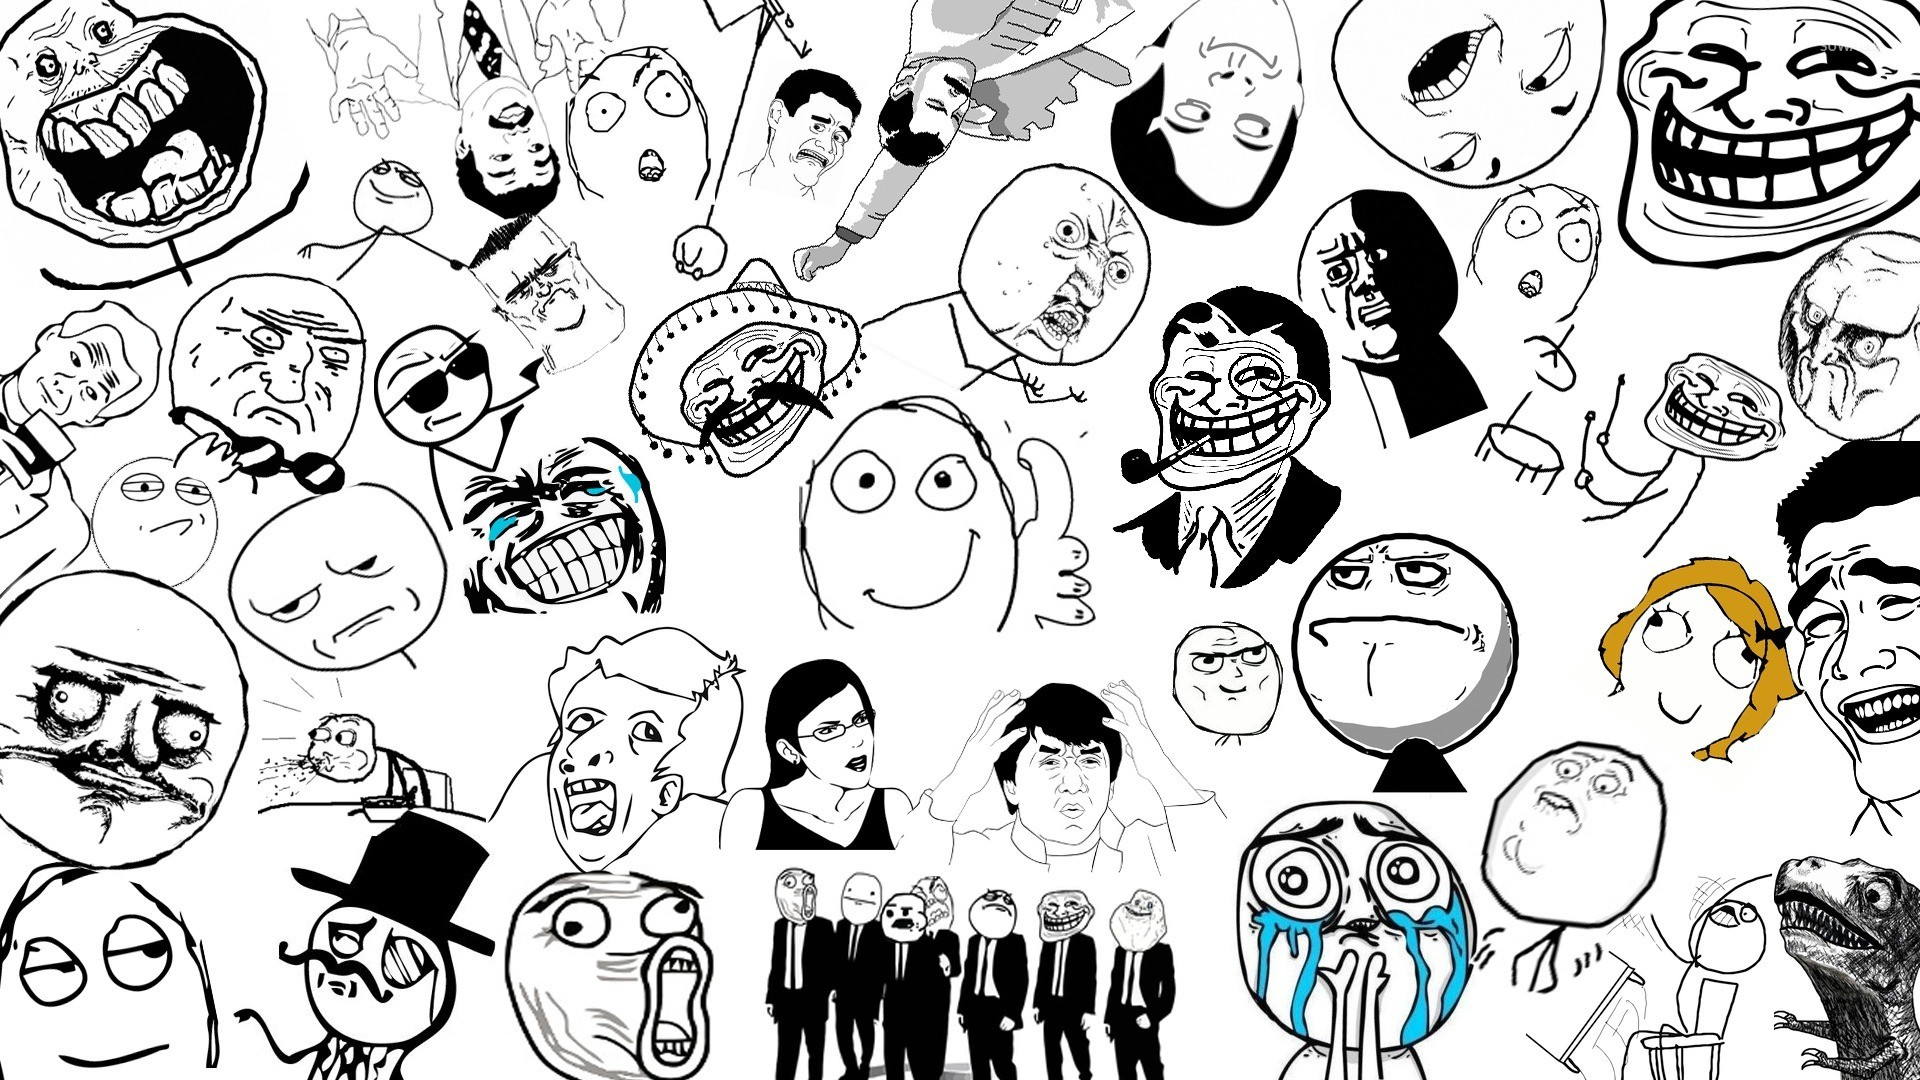 1920x1080 backgrounds for meme face backgrounds www 8backgrounds com